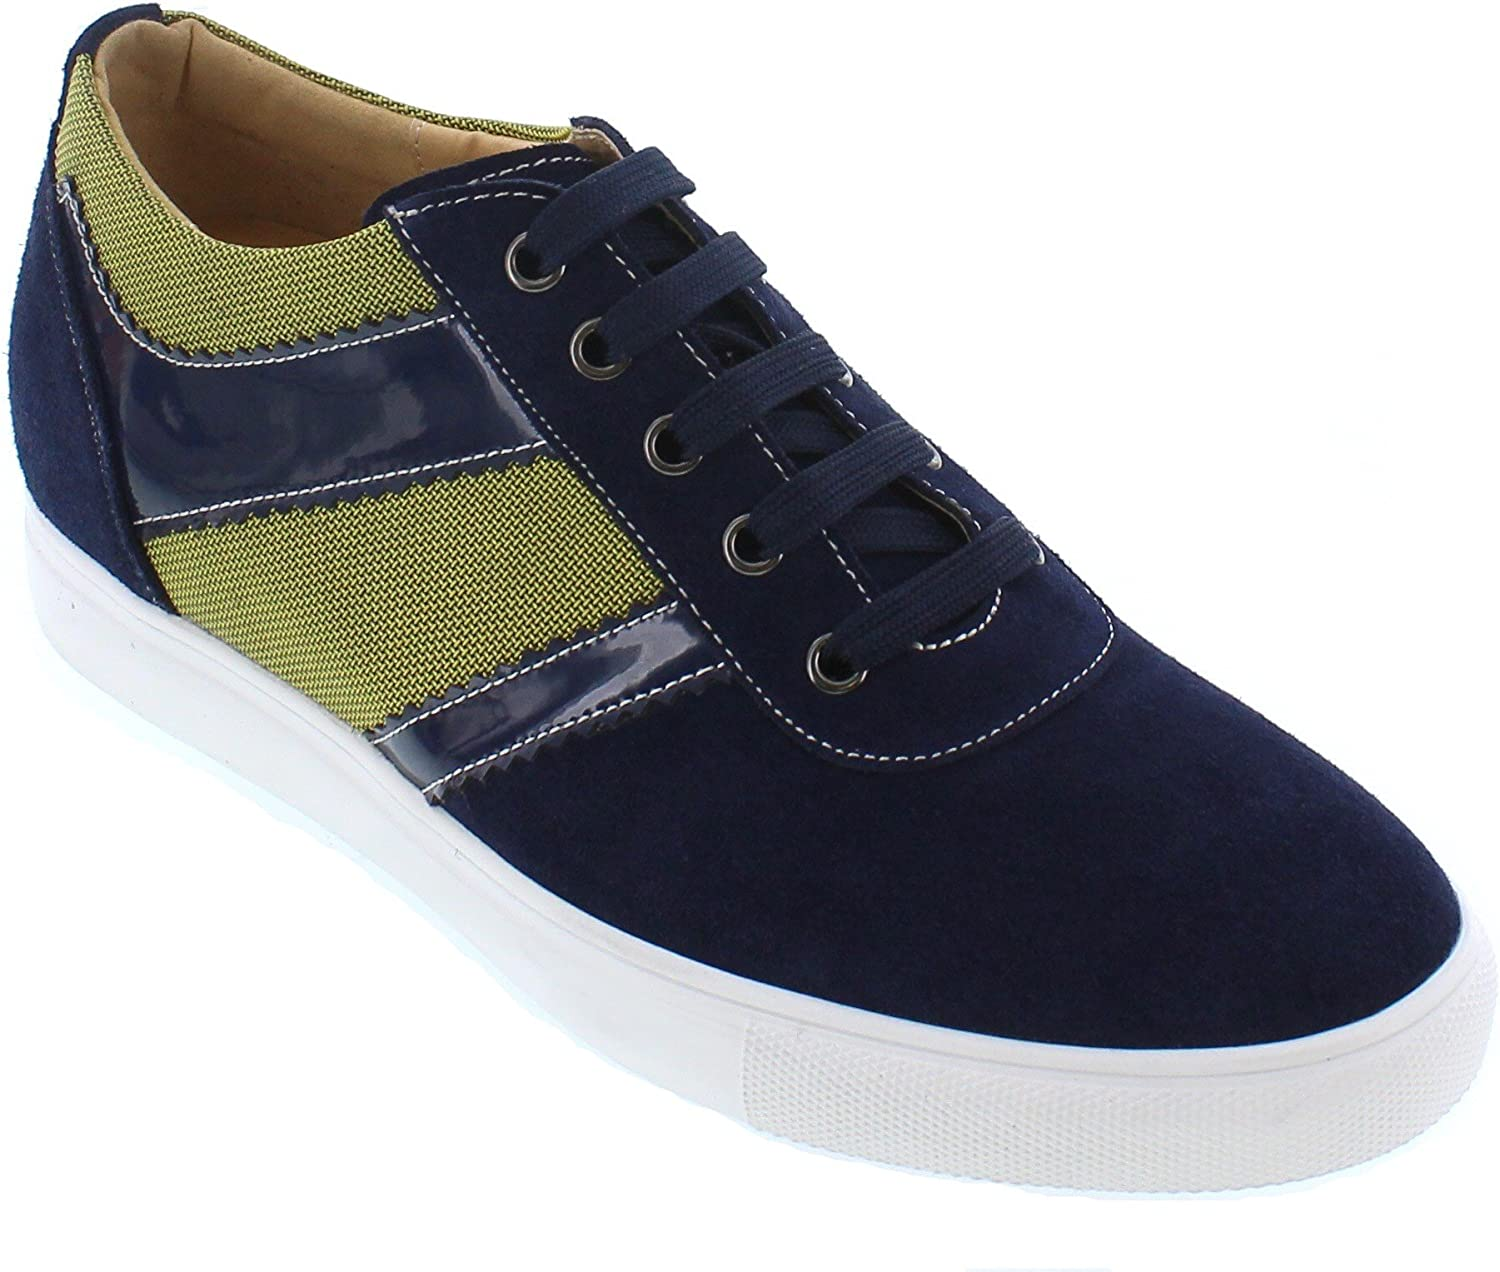 CALTO Men's Invisible Height Increasing Elevator shoes - Navy & Metallic Green Suede Mesh Lace-up Lightweight Fashion Sneakers - 2.4 Inches Taller - J9107